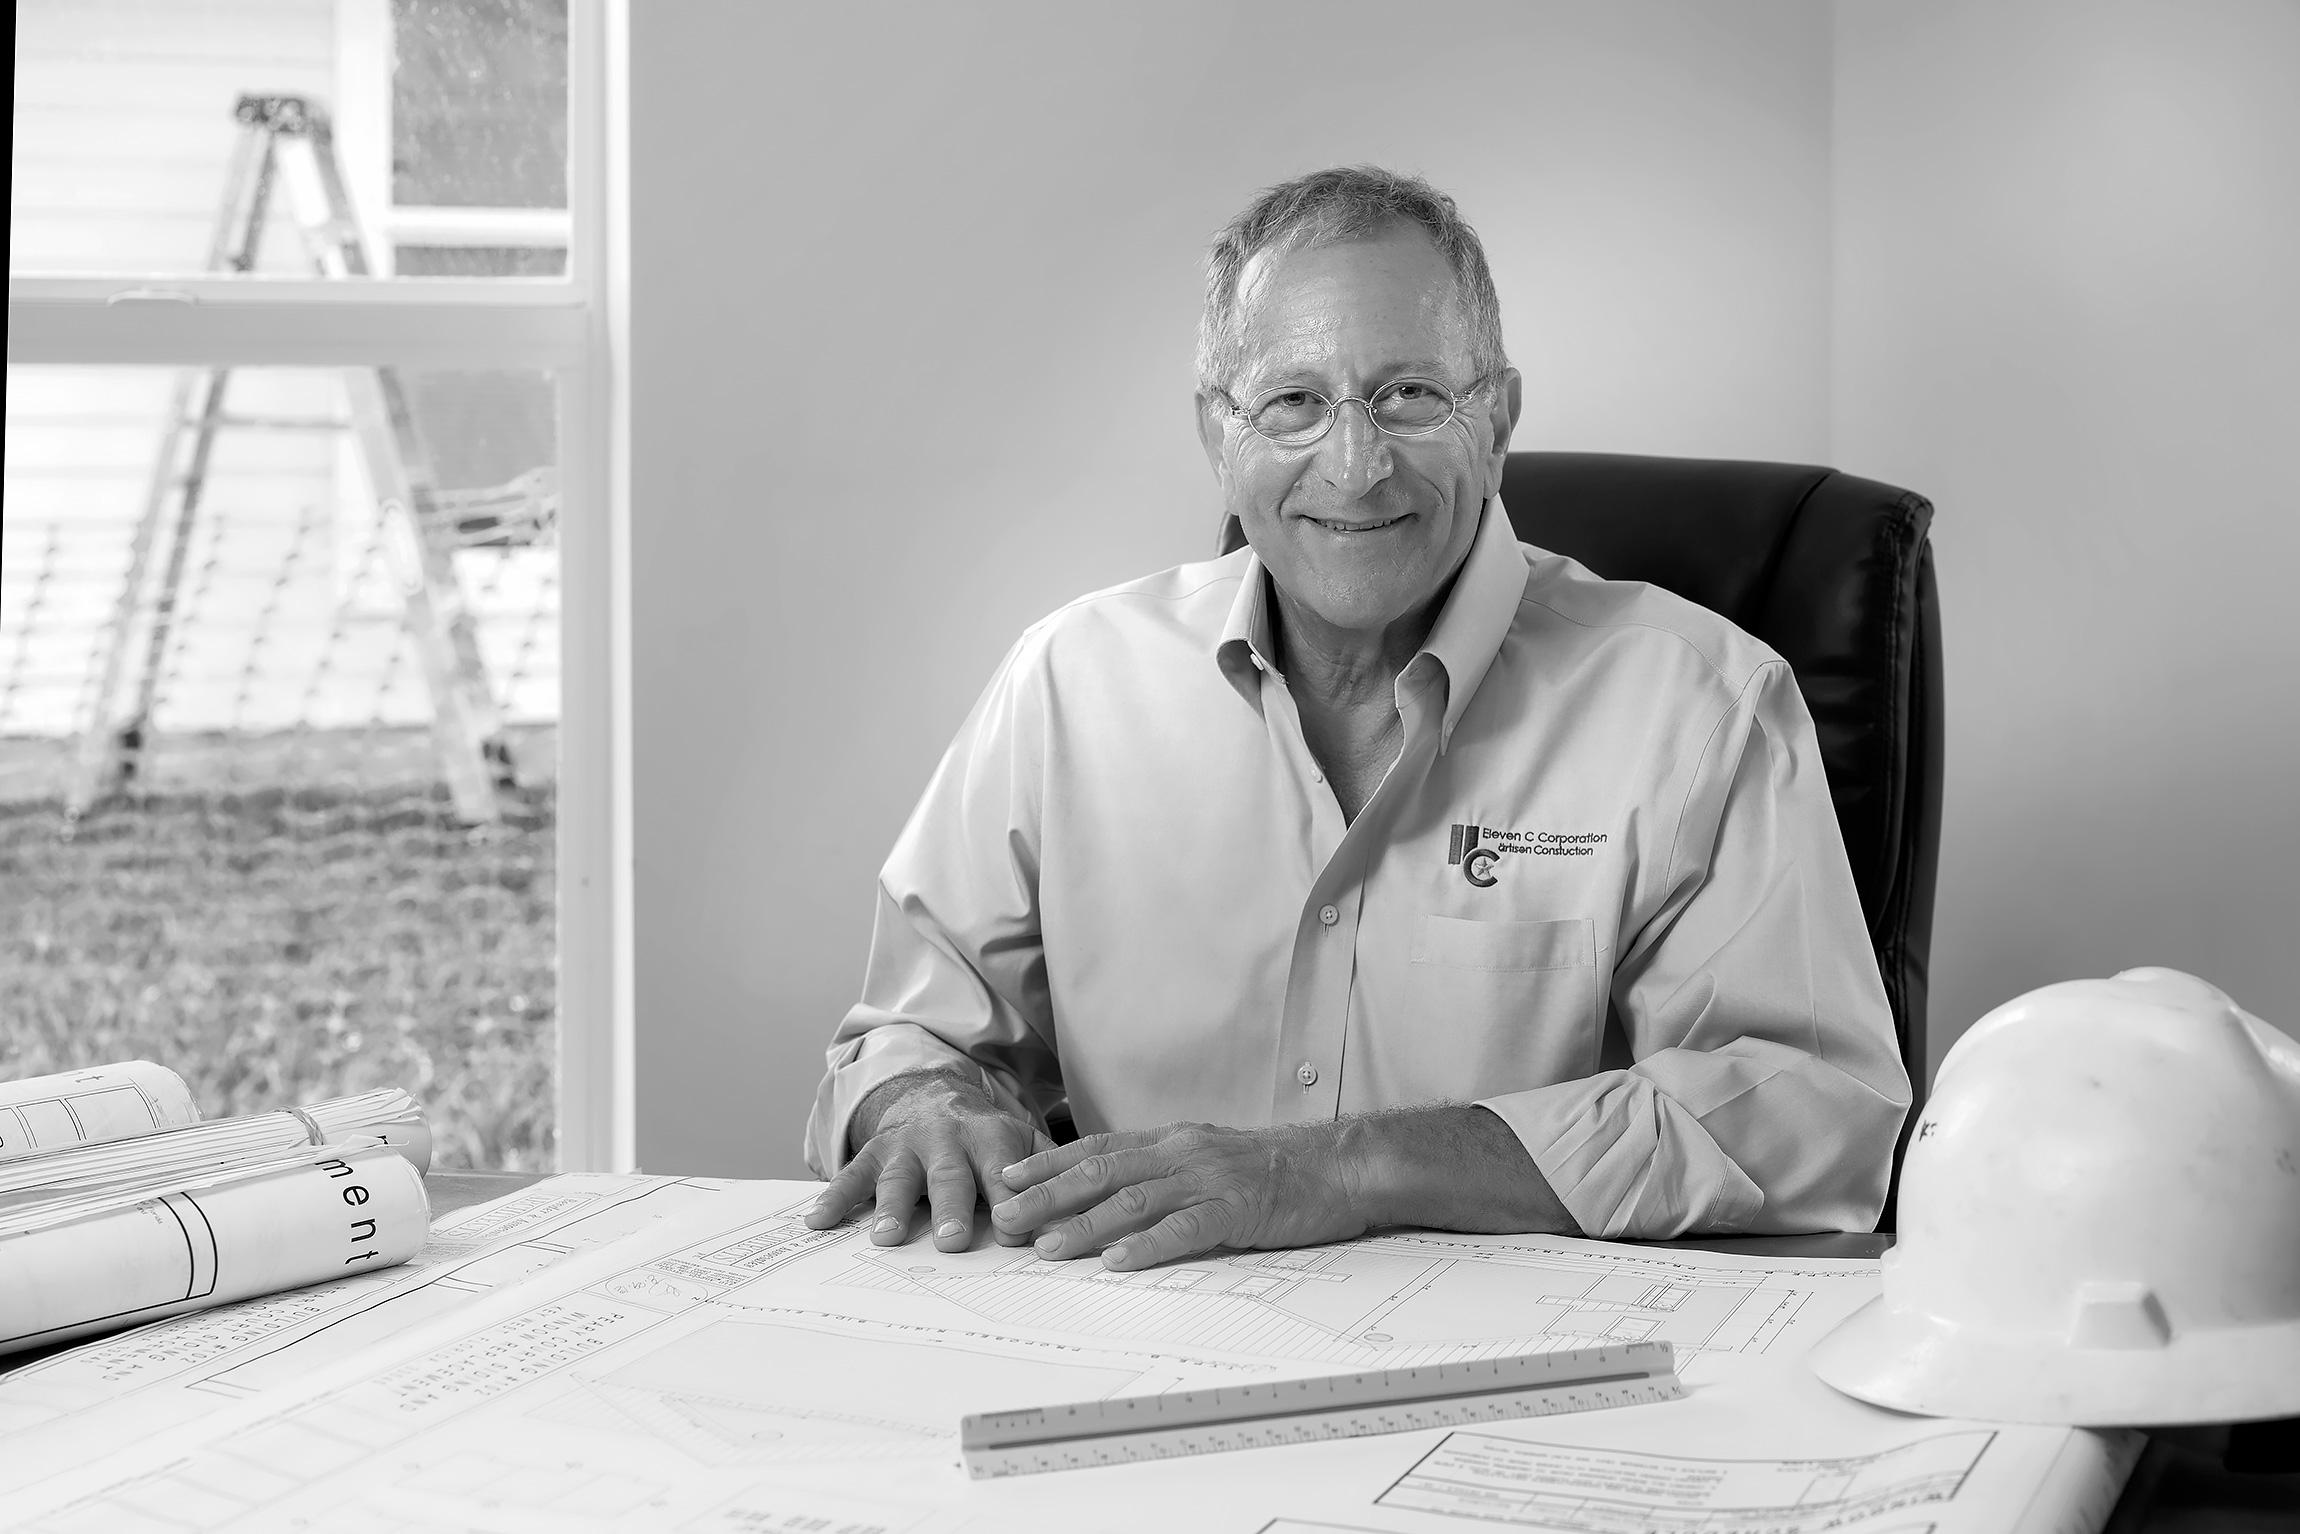 Portrait-of-General-Contractor